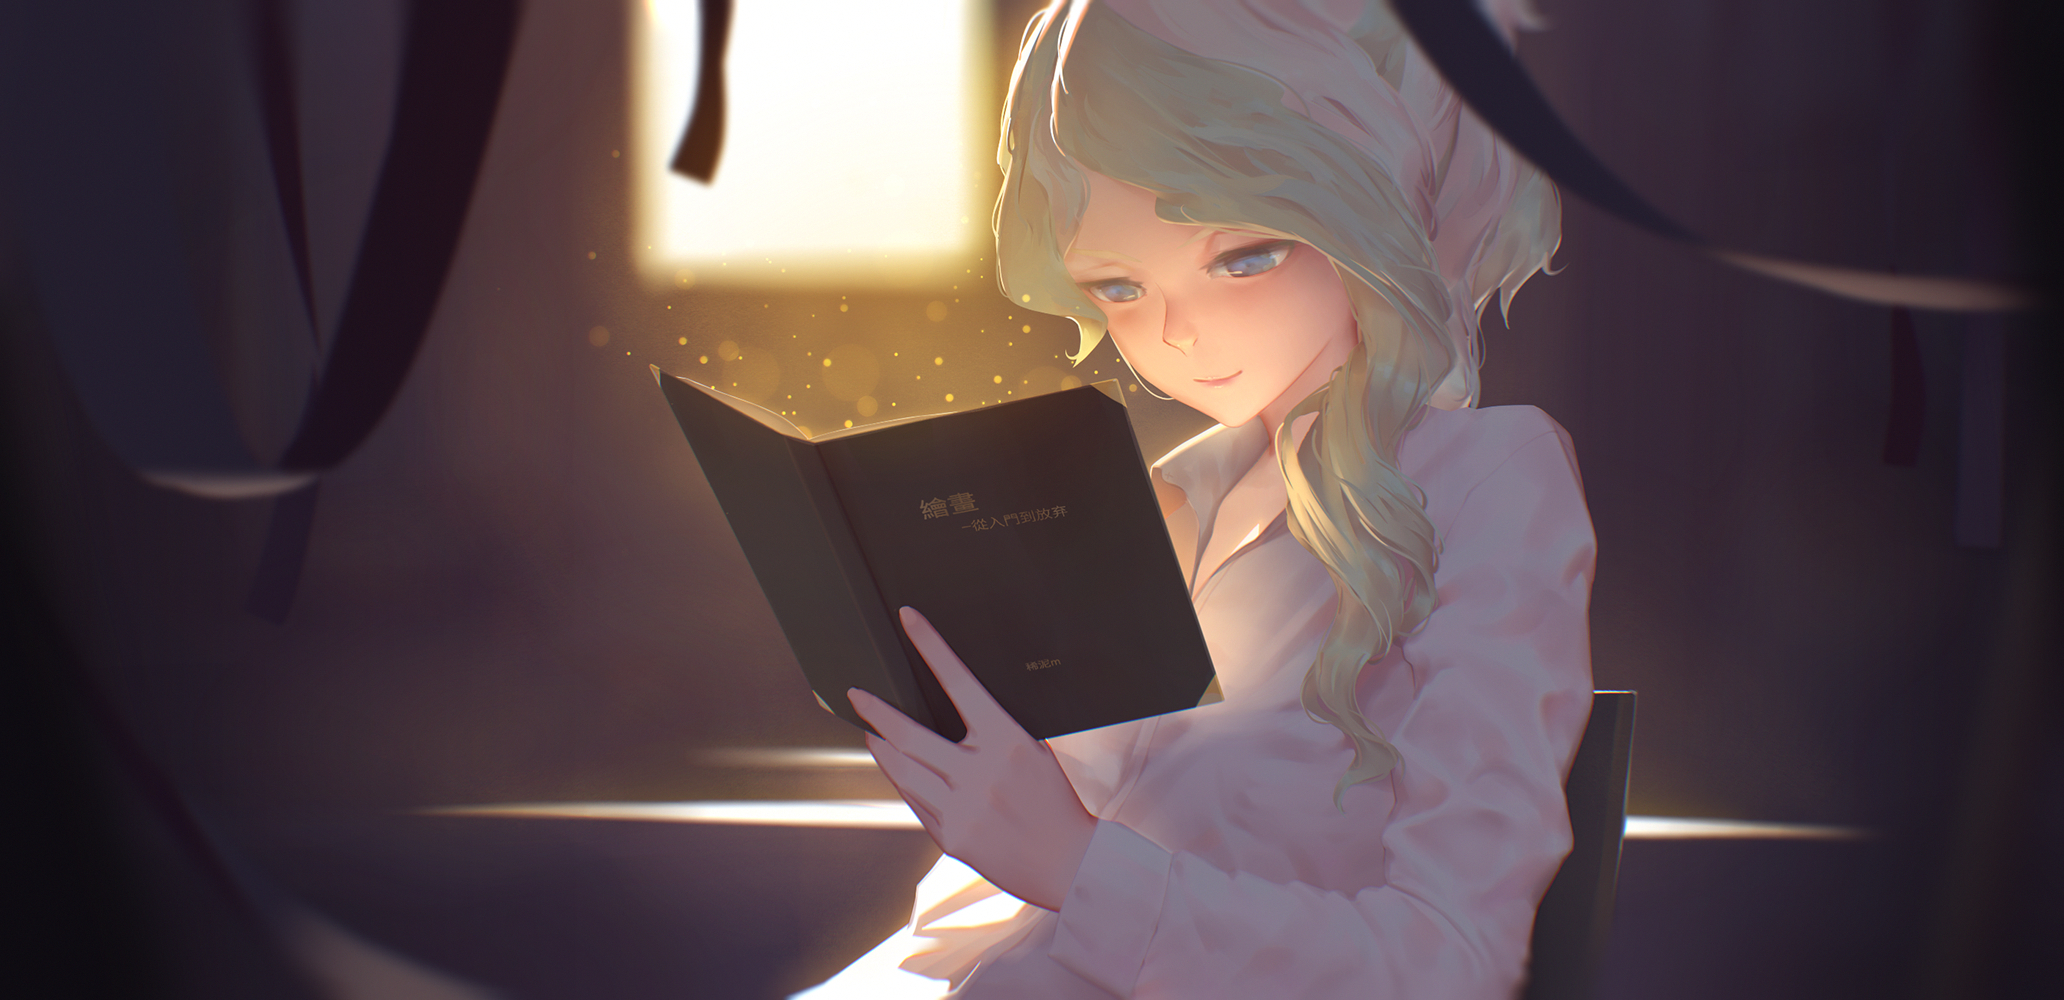 Image Result For Anime Girl Reading A Book Wallpaper